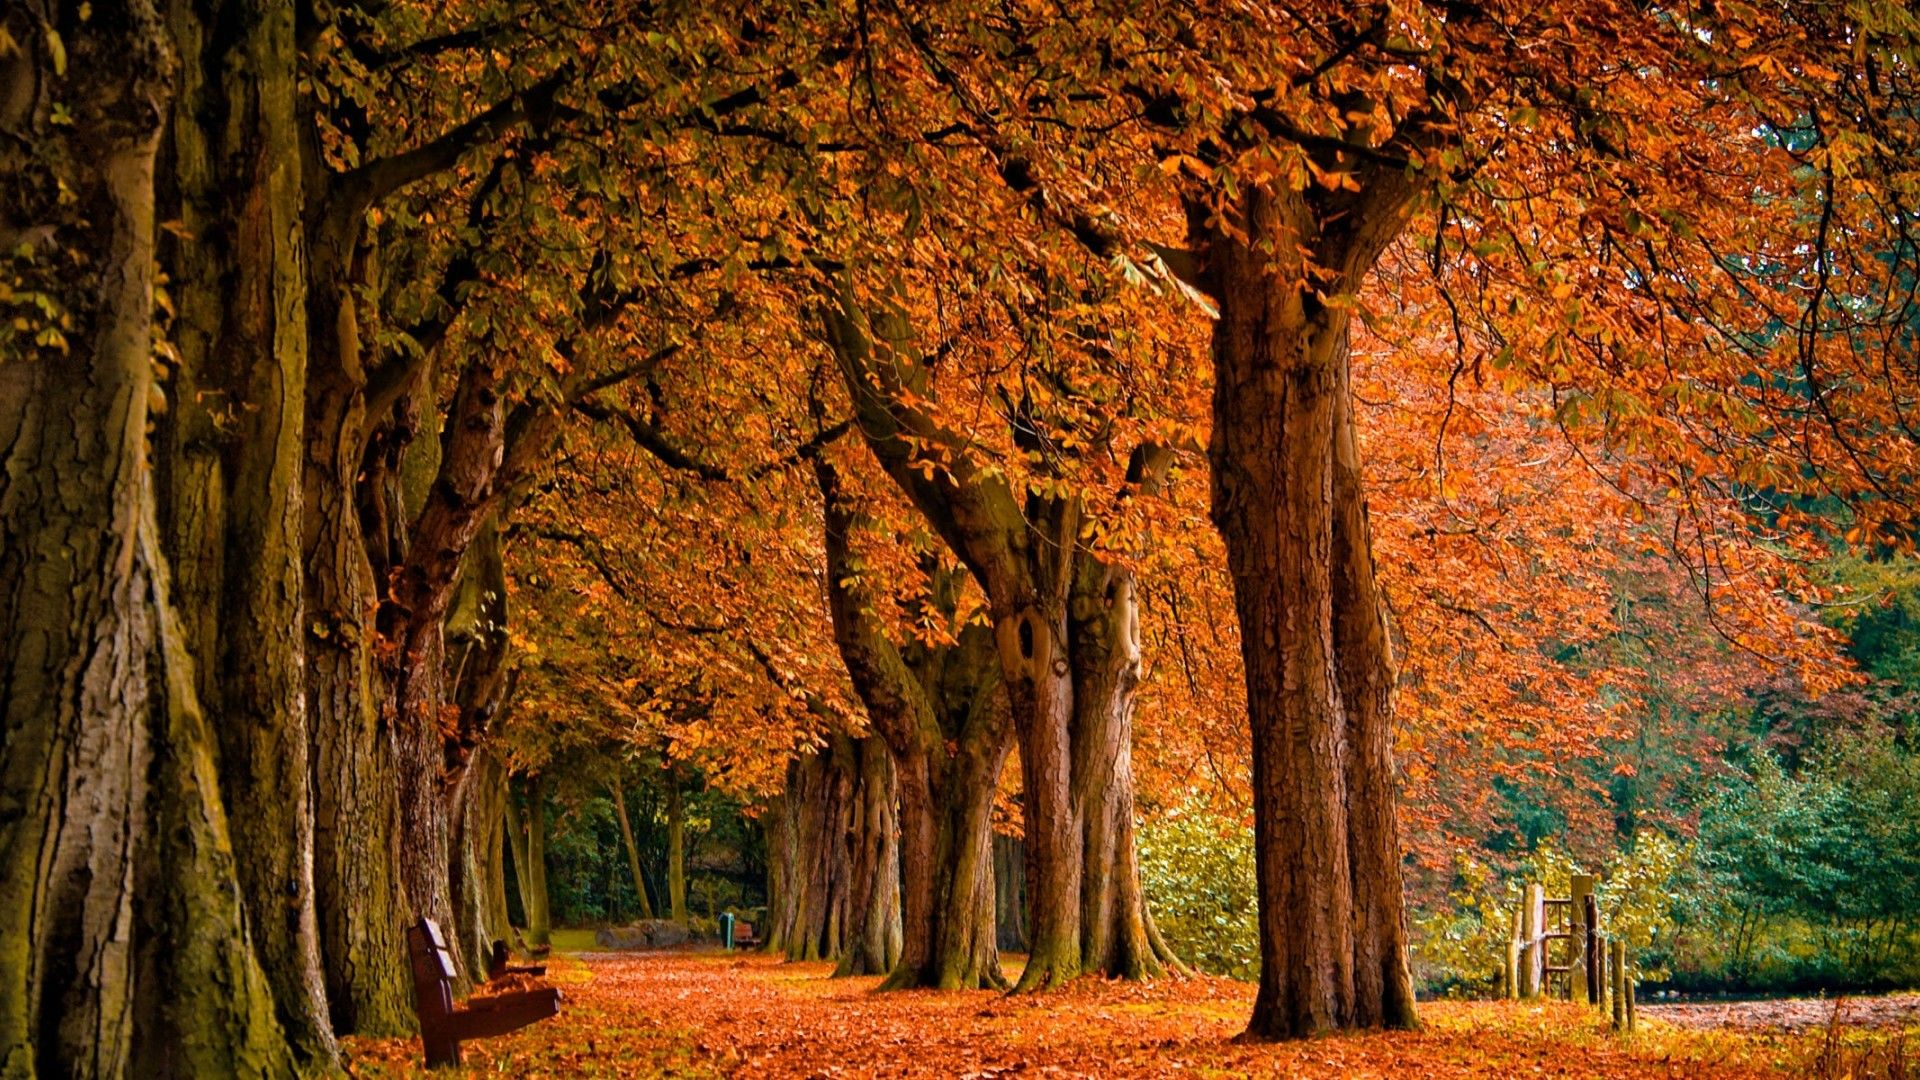 1920x1080 Hd Autumn Wallpapers 61 Images Fall Desktop Backgrounds Desktop Wallpaper Fall Fall Wallpaper